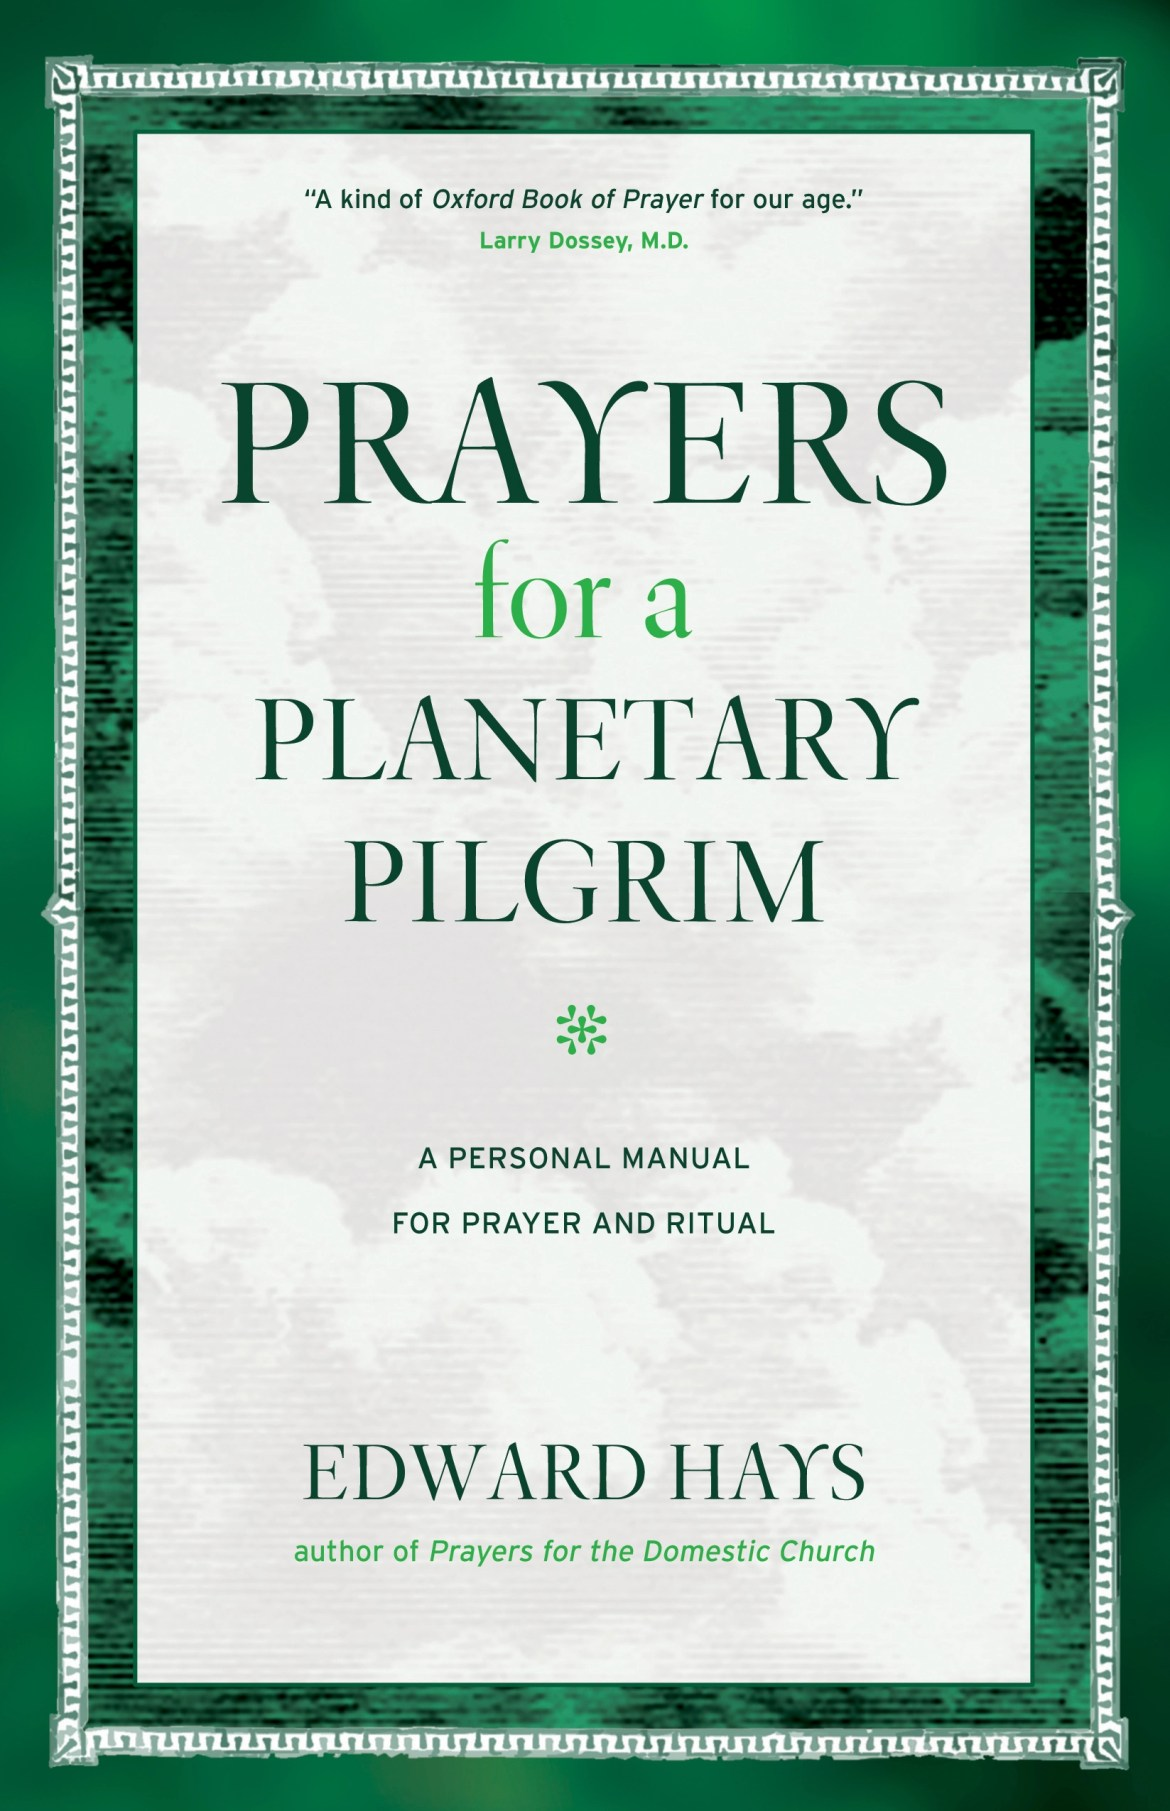 Prayers for a Planetary Pilgrim